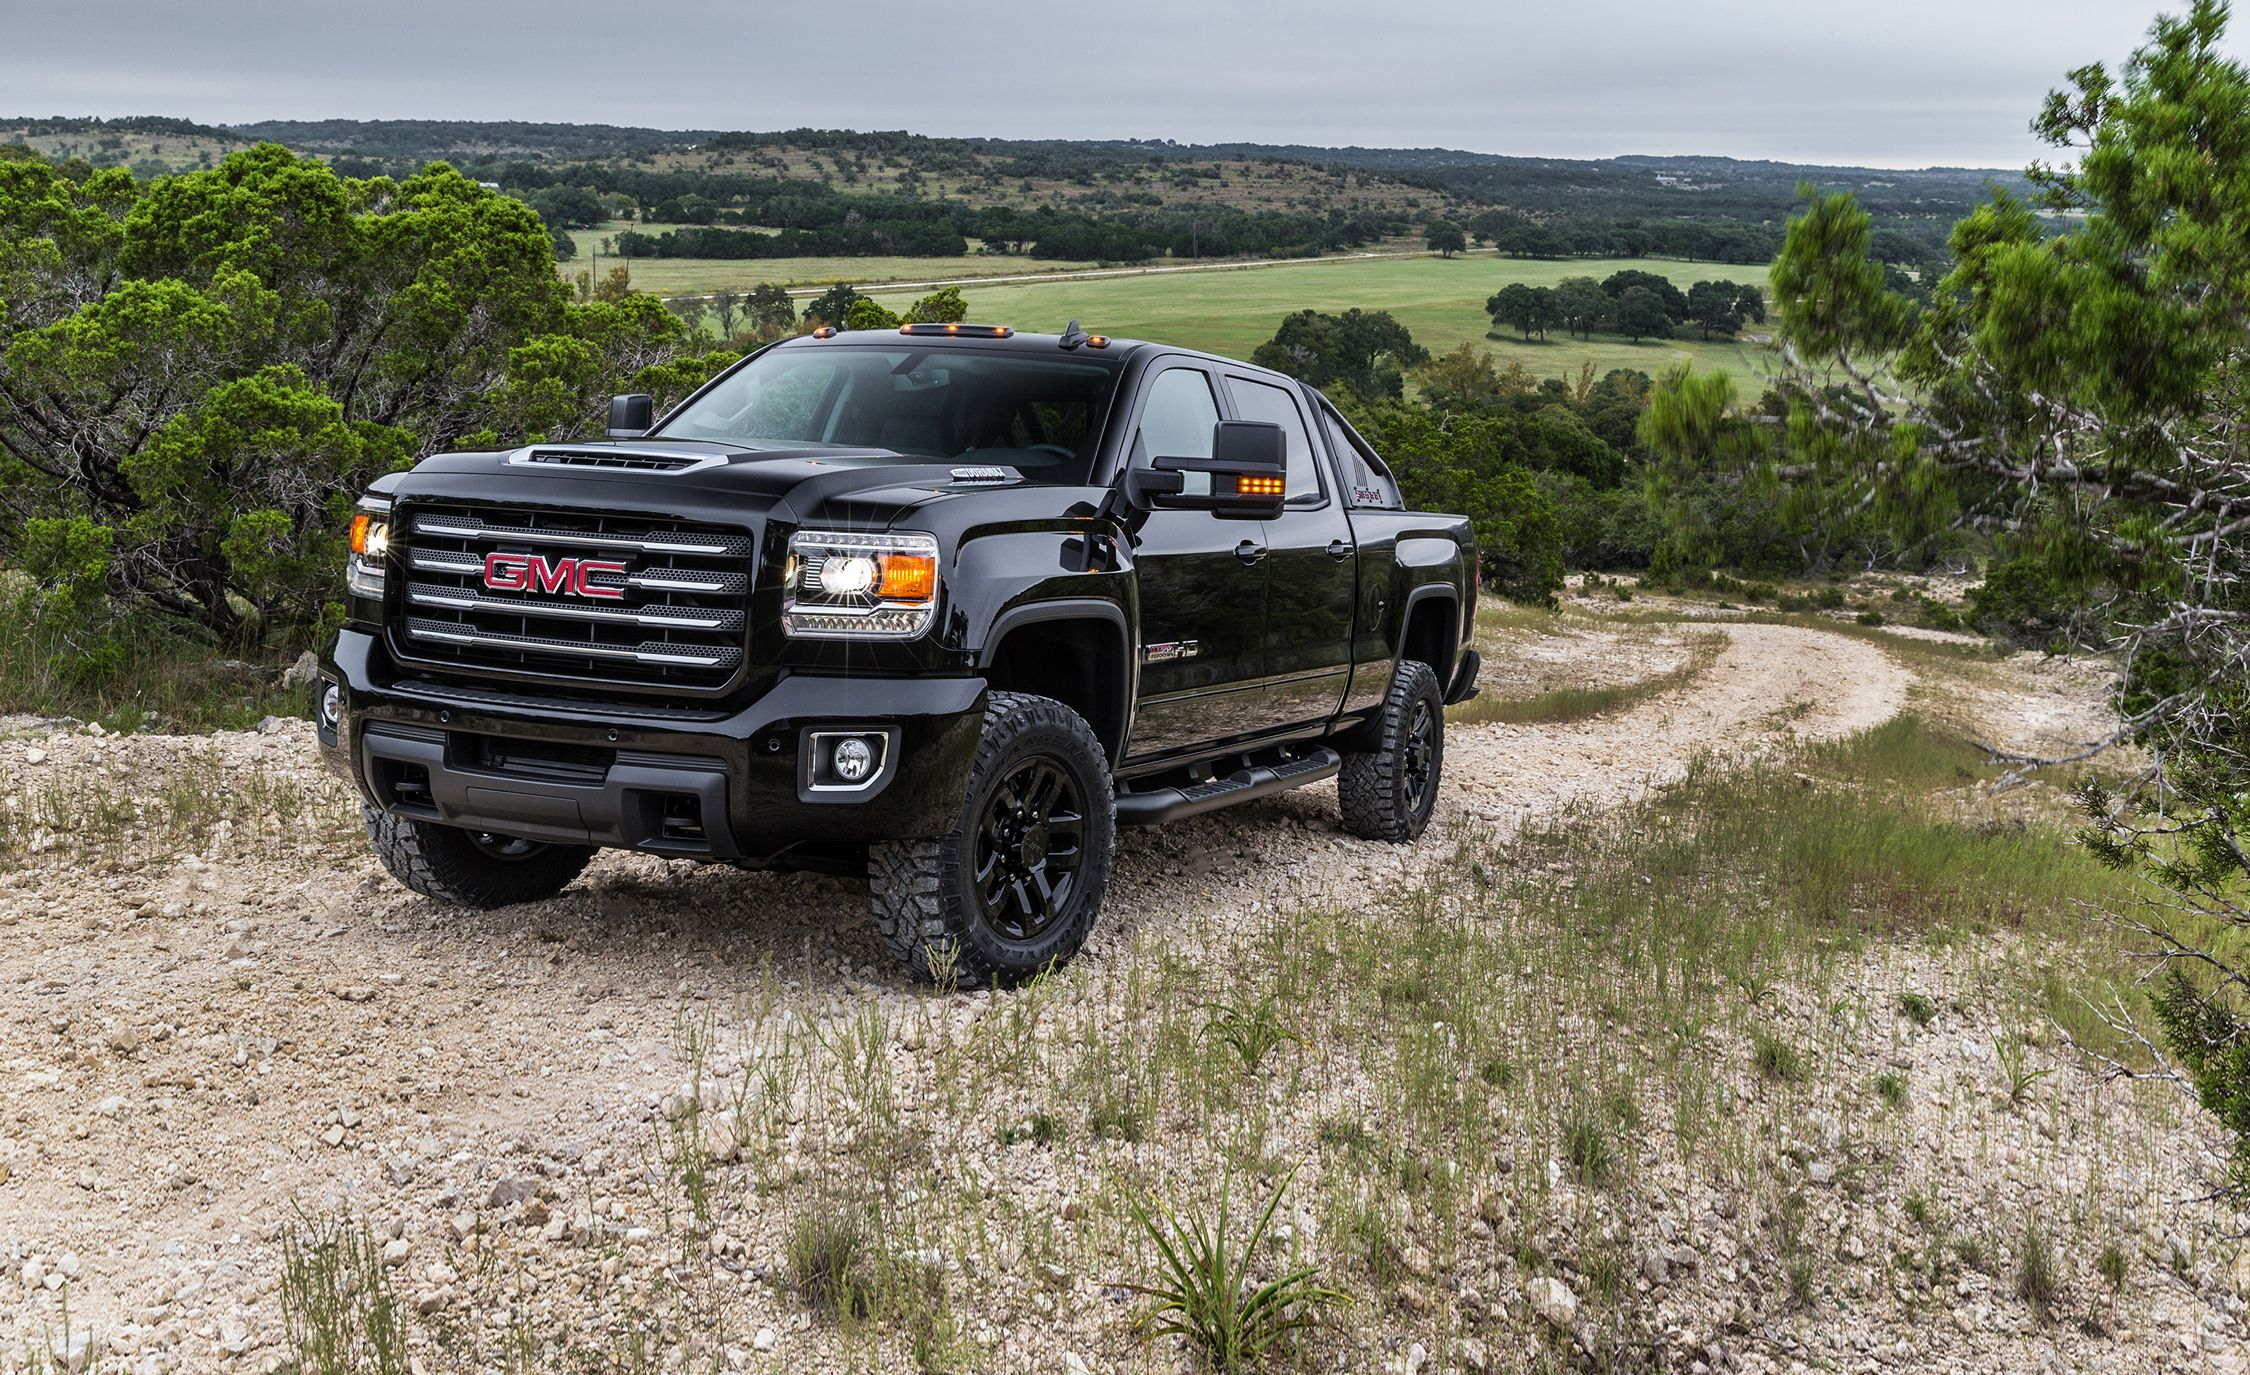 Gmc Sierra Denali For Sale >> 2018 GMC Sierra 2500HD / 3500HD | In-Depth Model Review | Car and Driver